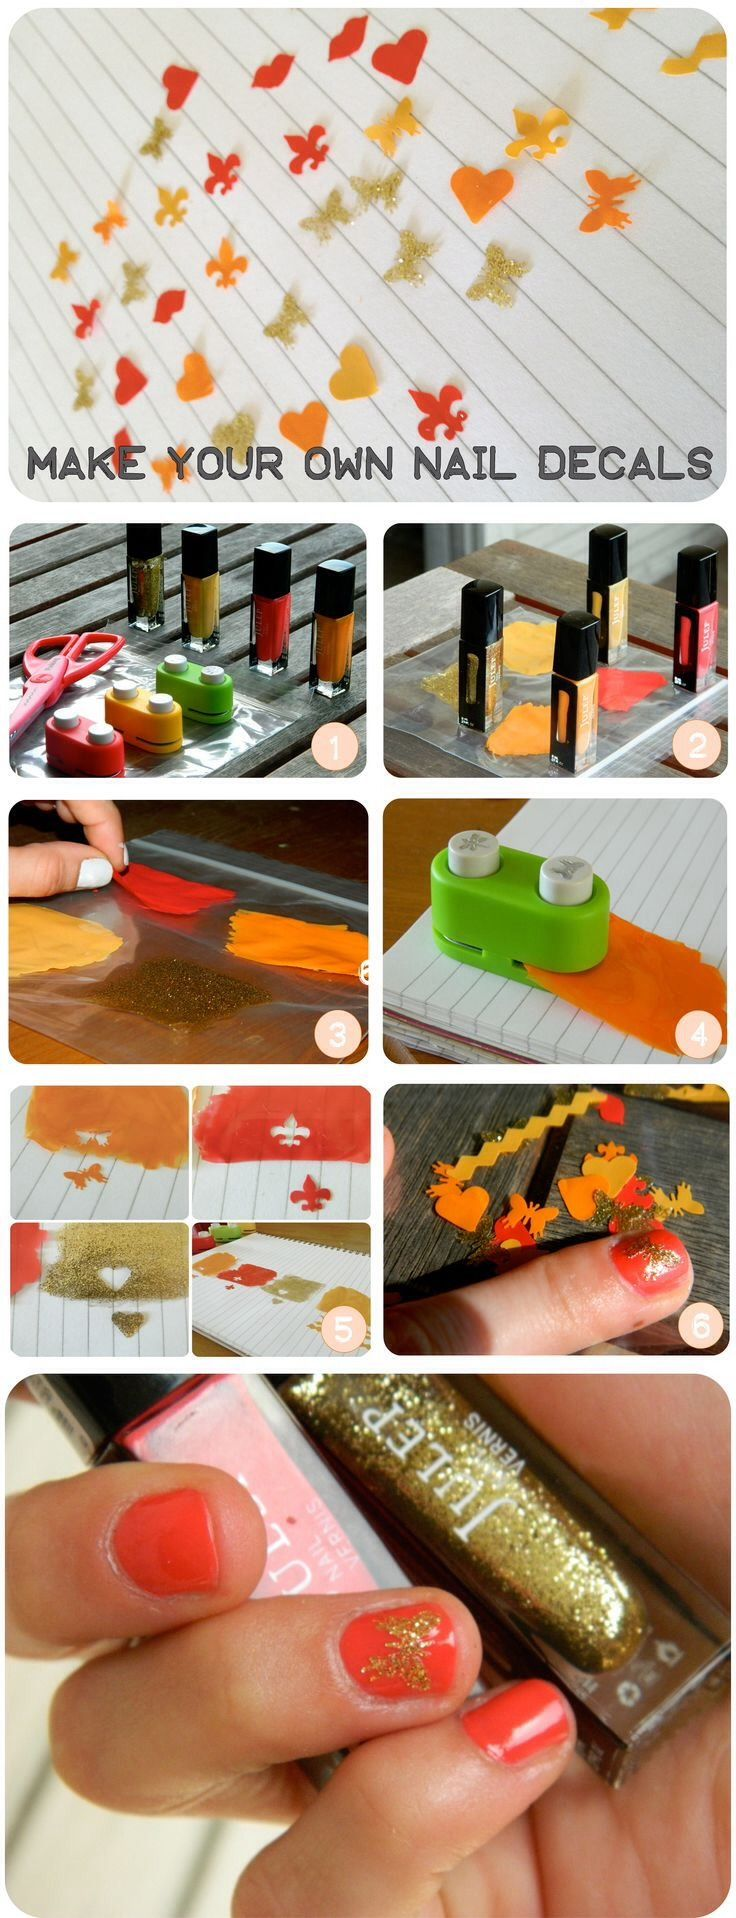 Best Diy Images On Pinterest Nail Stencils Nail Art Stencils - How to make nail decals at home